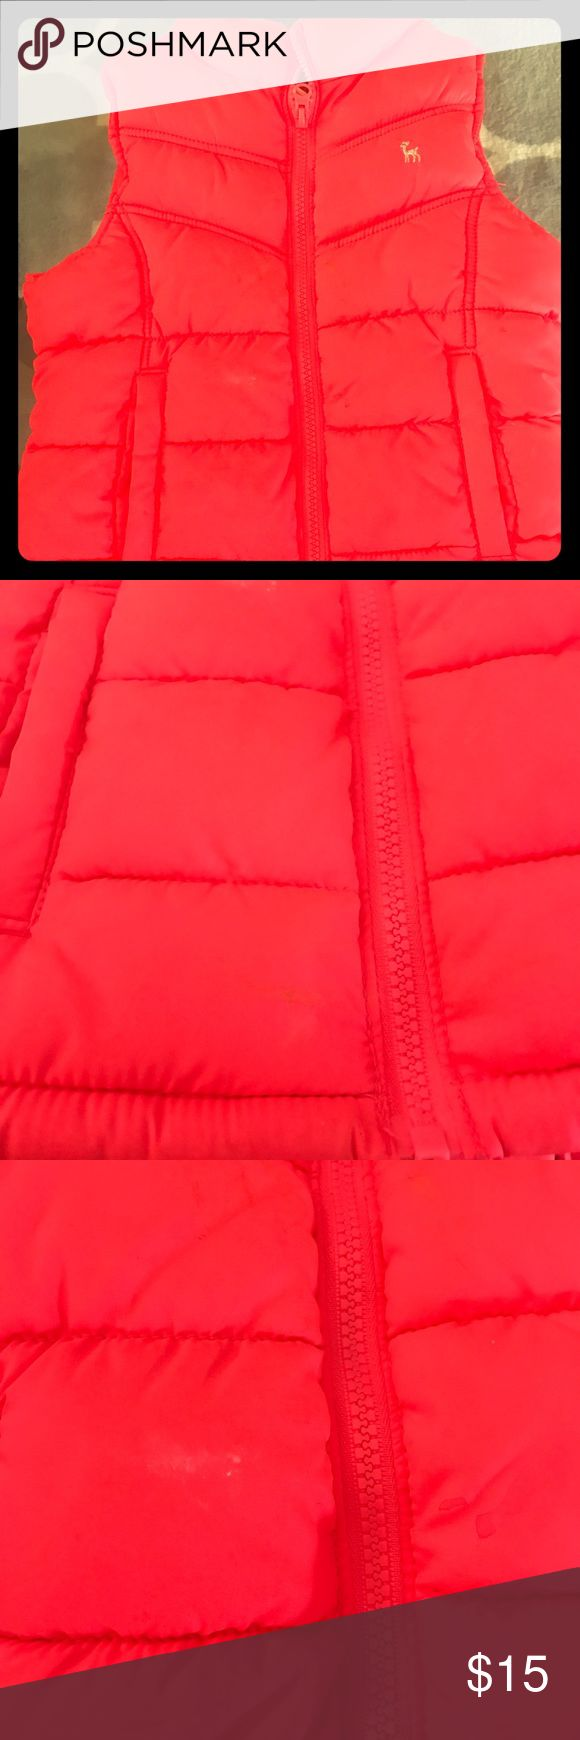 Old Navy puffer vest- neon orange Super cute neon orange puffer vest. Old Navy kids size small. Few little places on it but nothing that can't be washed. No rips or tears. Old Navy Jackets & Coats Vests